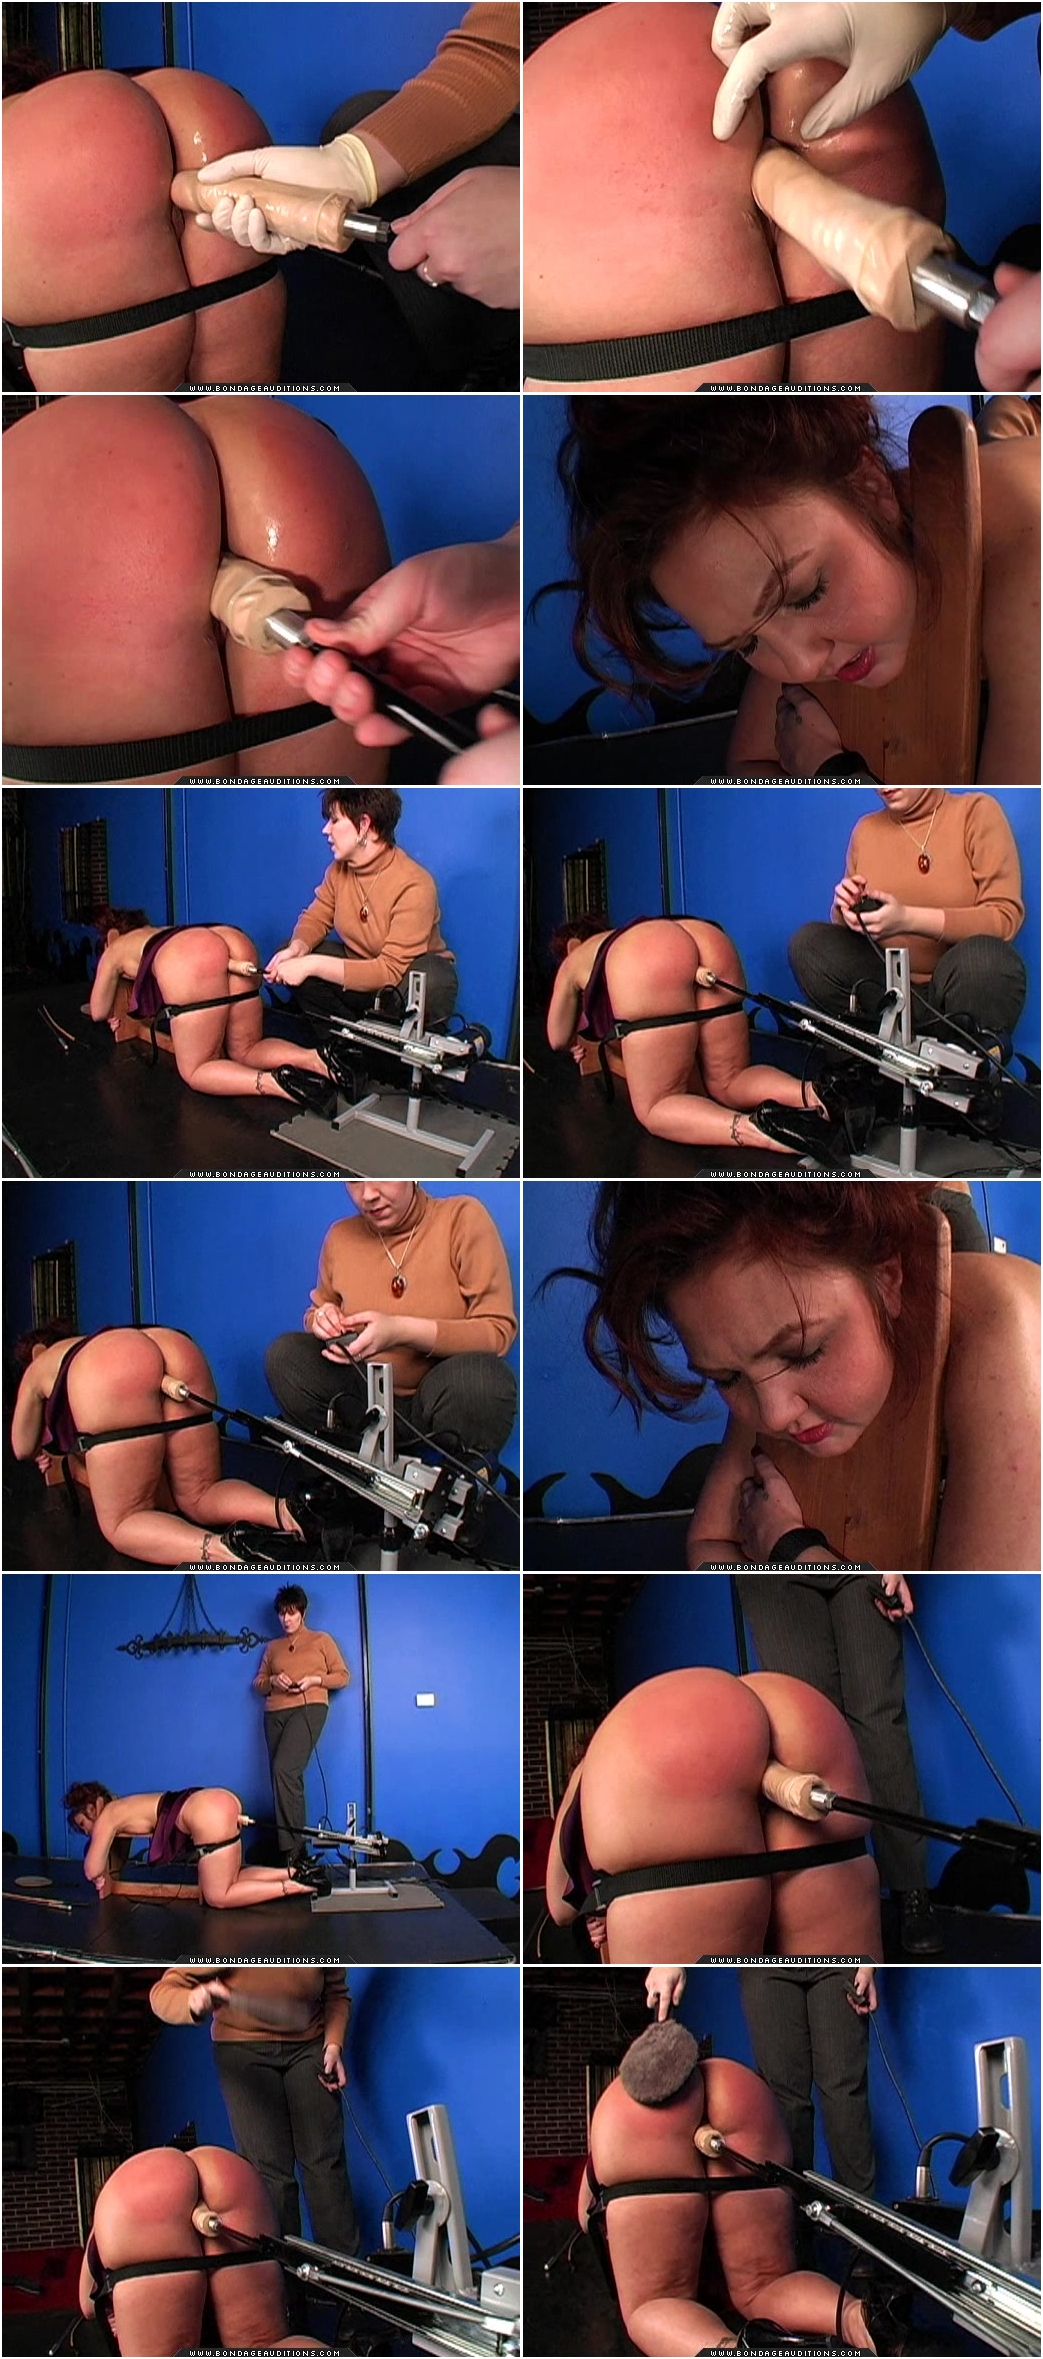 yutub-video-bdsm